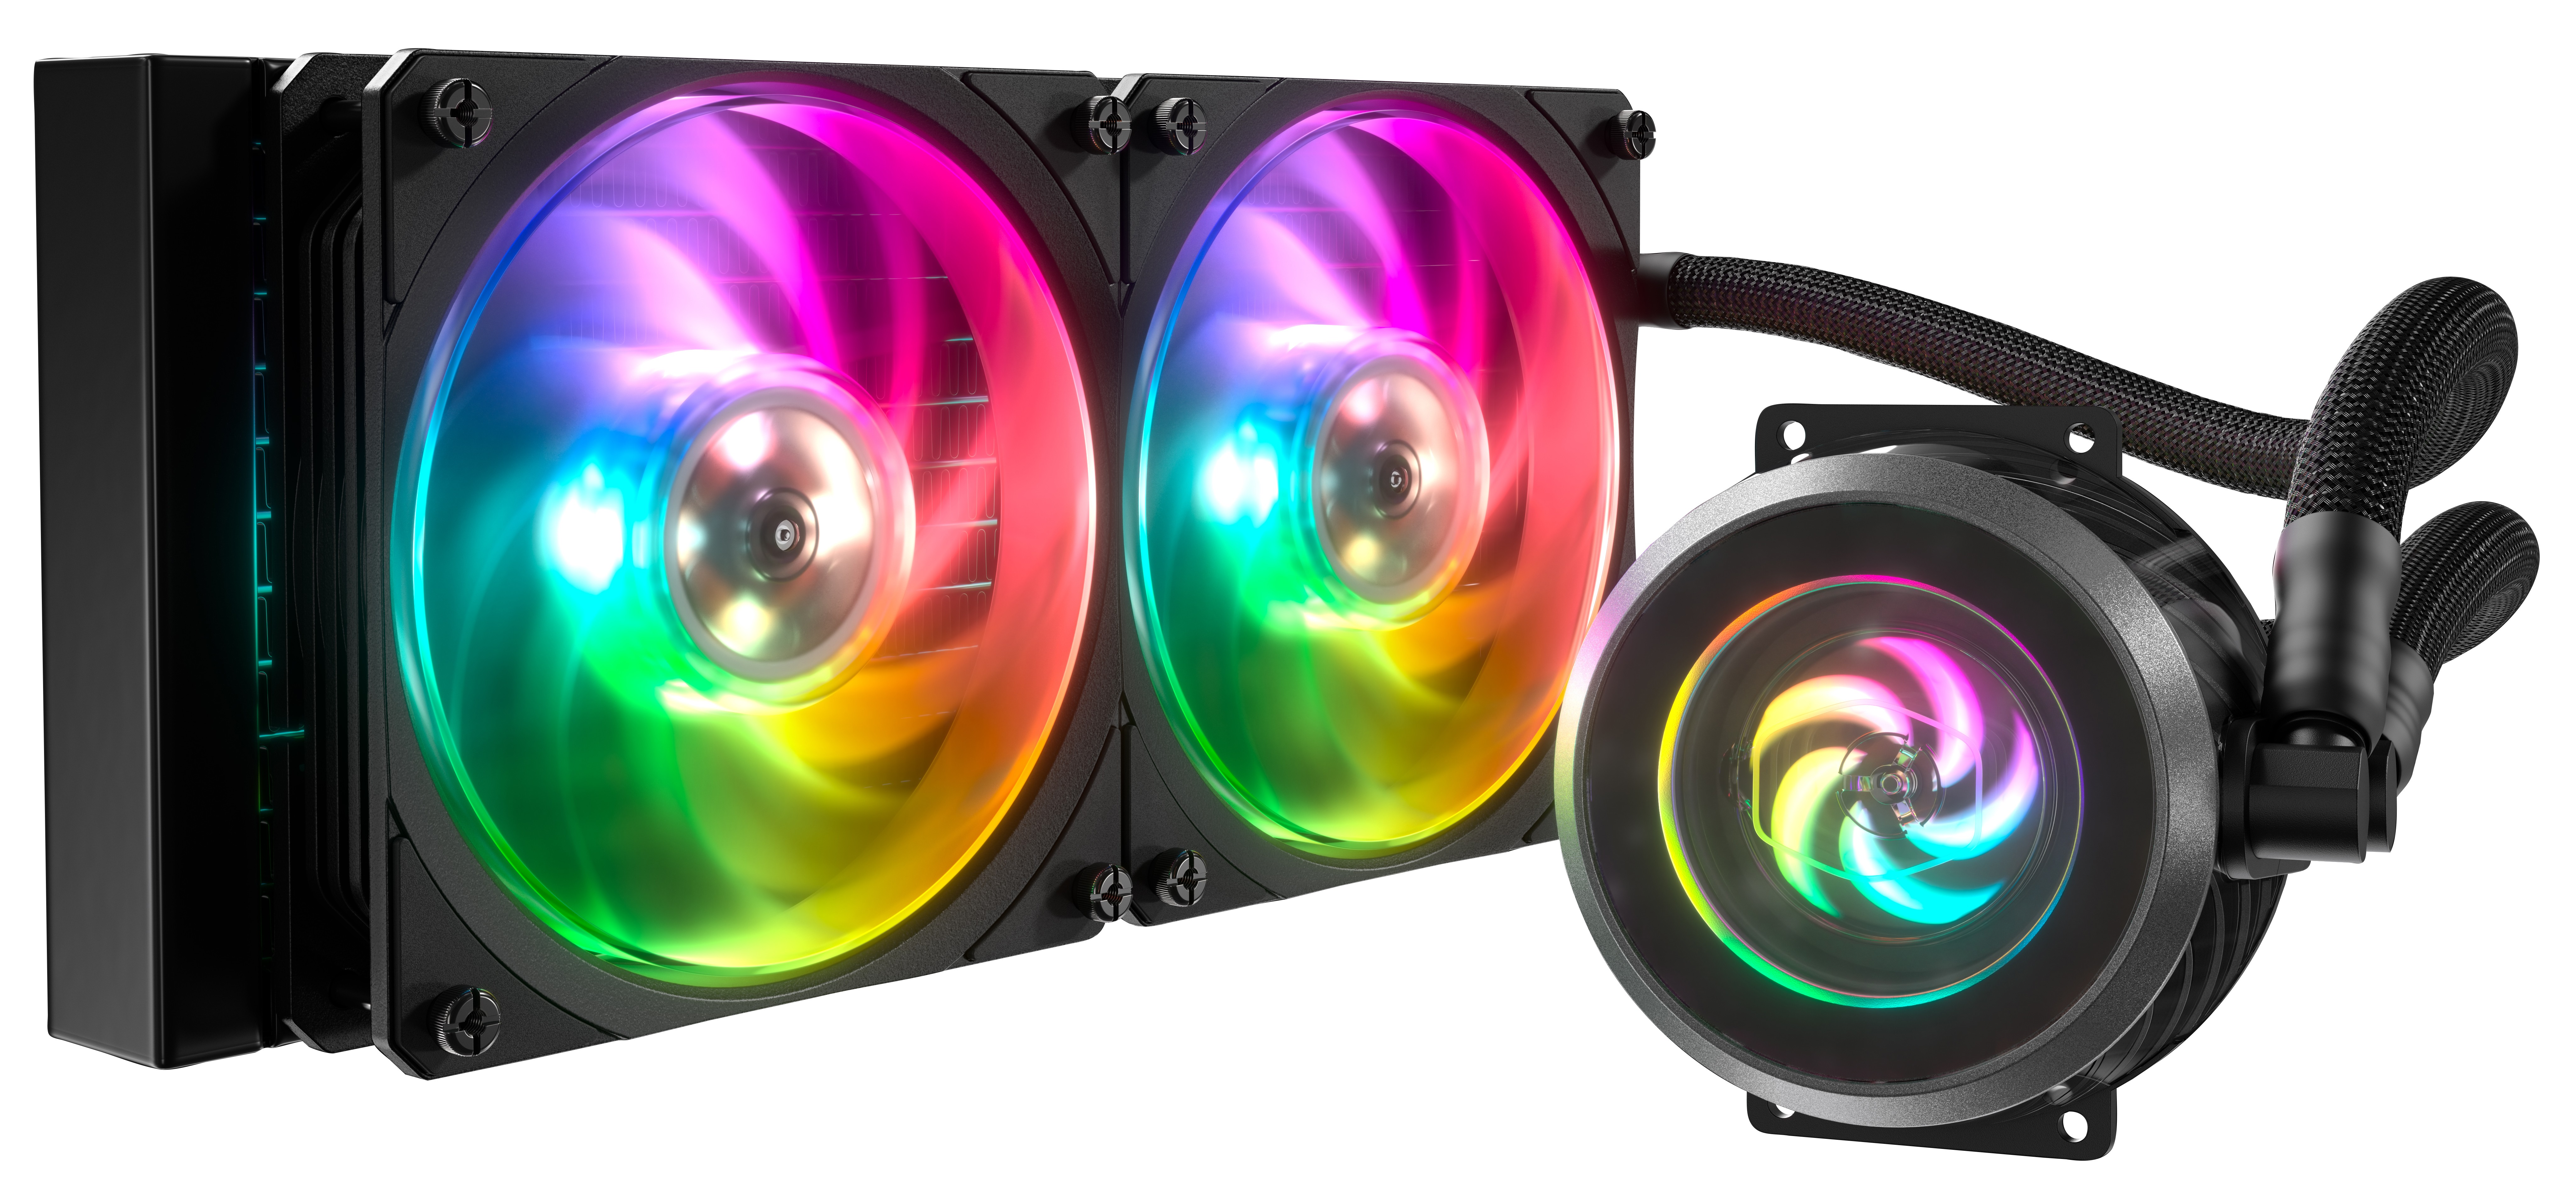 Cooler Master Releases New Cooling Products During Ces